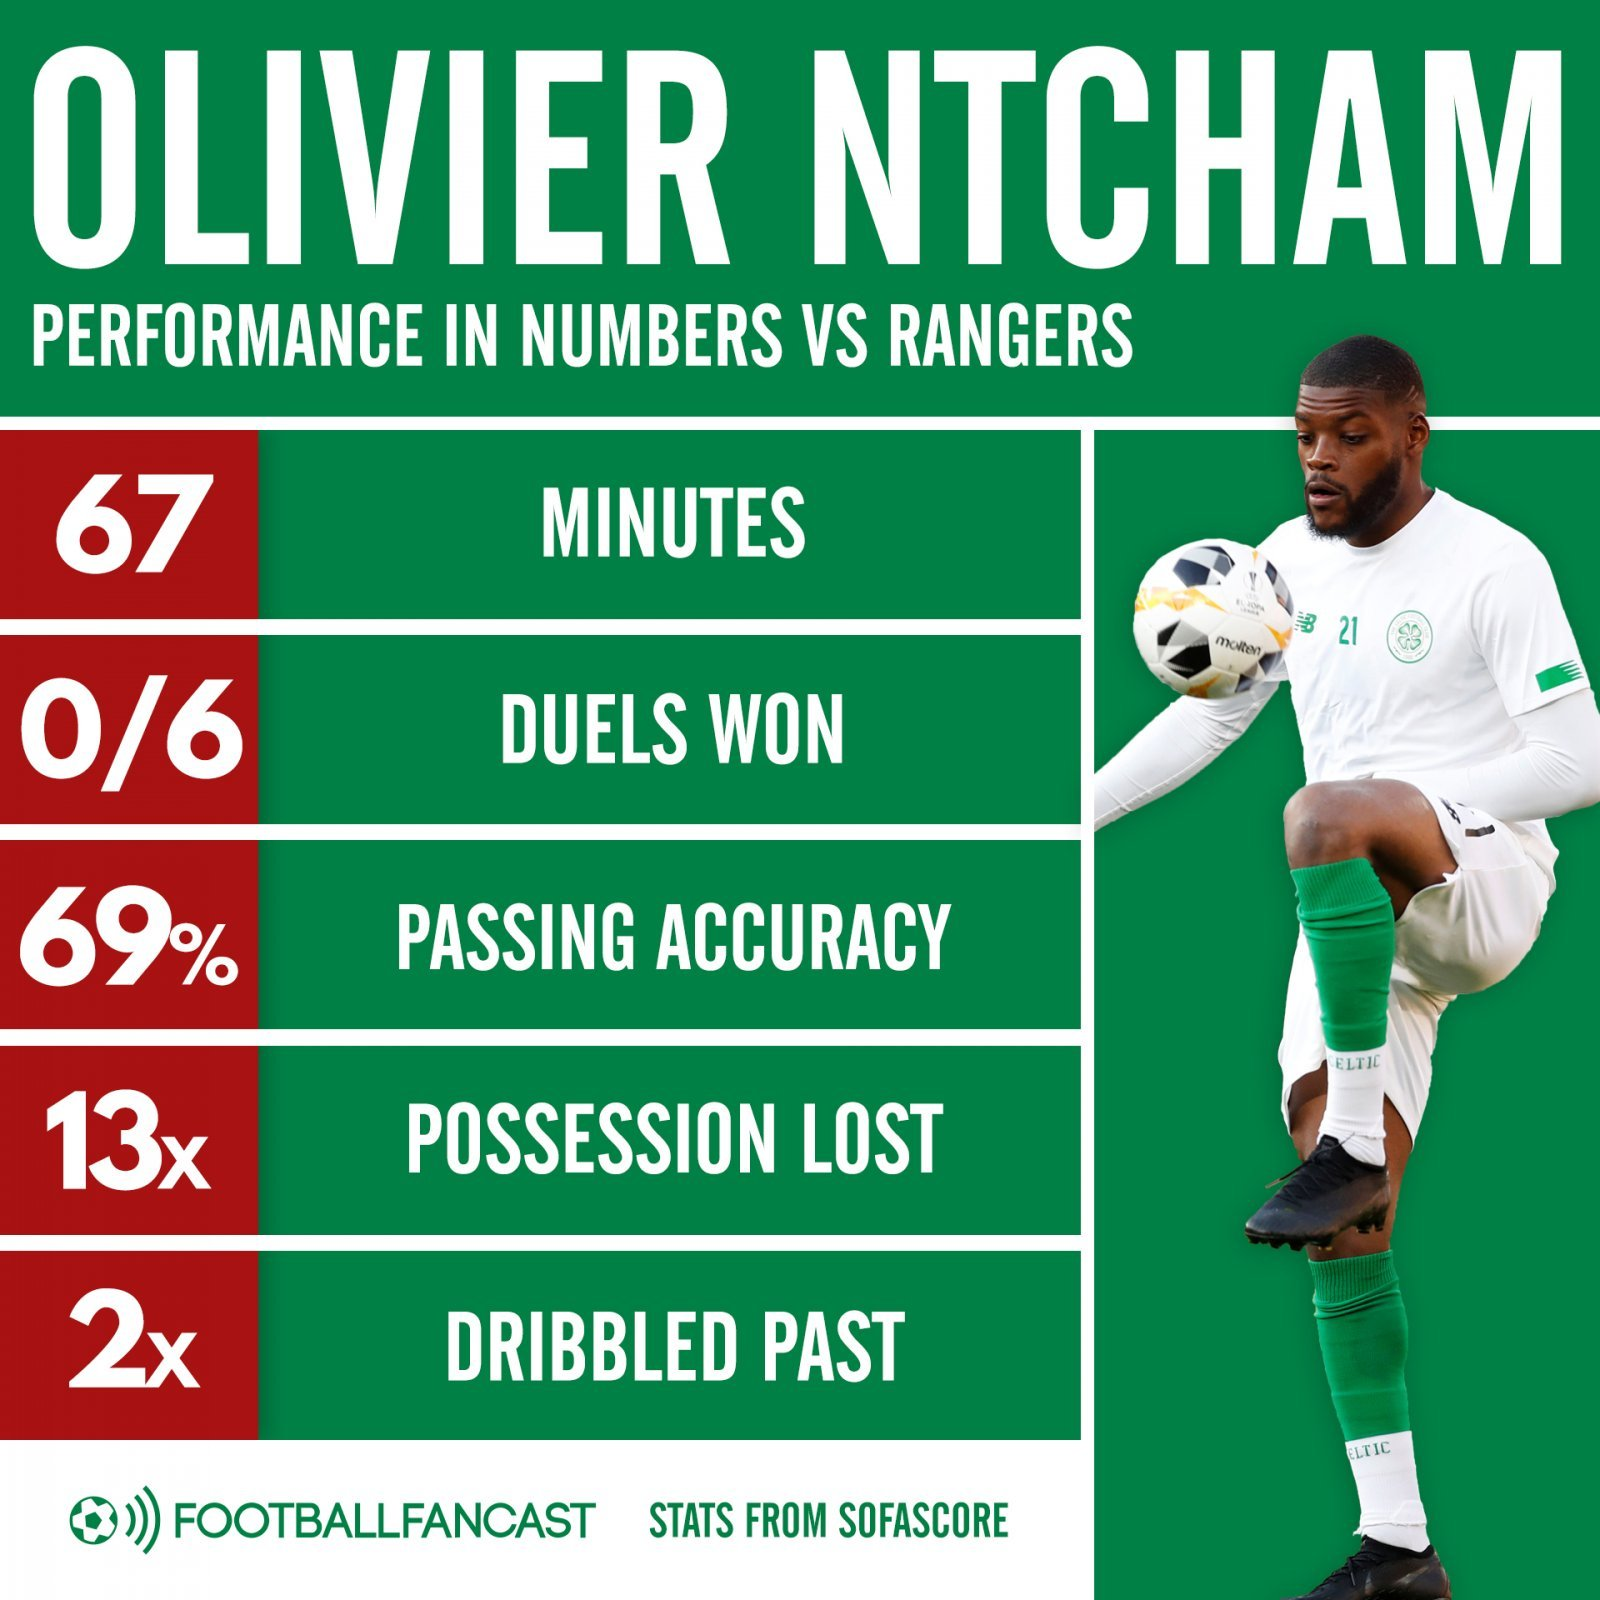 olivier ntcham vs rangers old firm derby 2020 - Lost 100% of his duels: Anonymous Celtic lightweight massively let Neil Lennon down - opinion